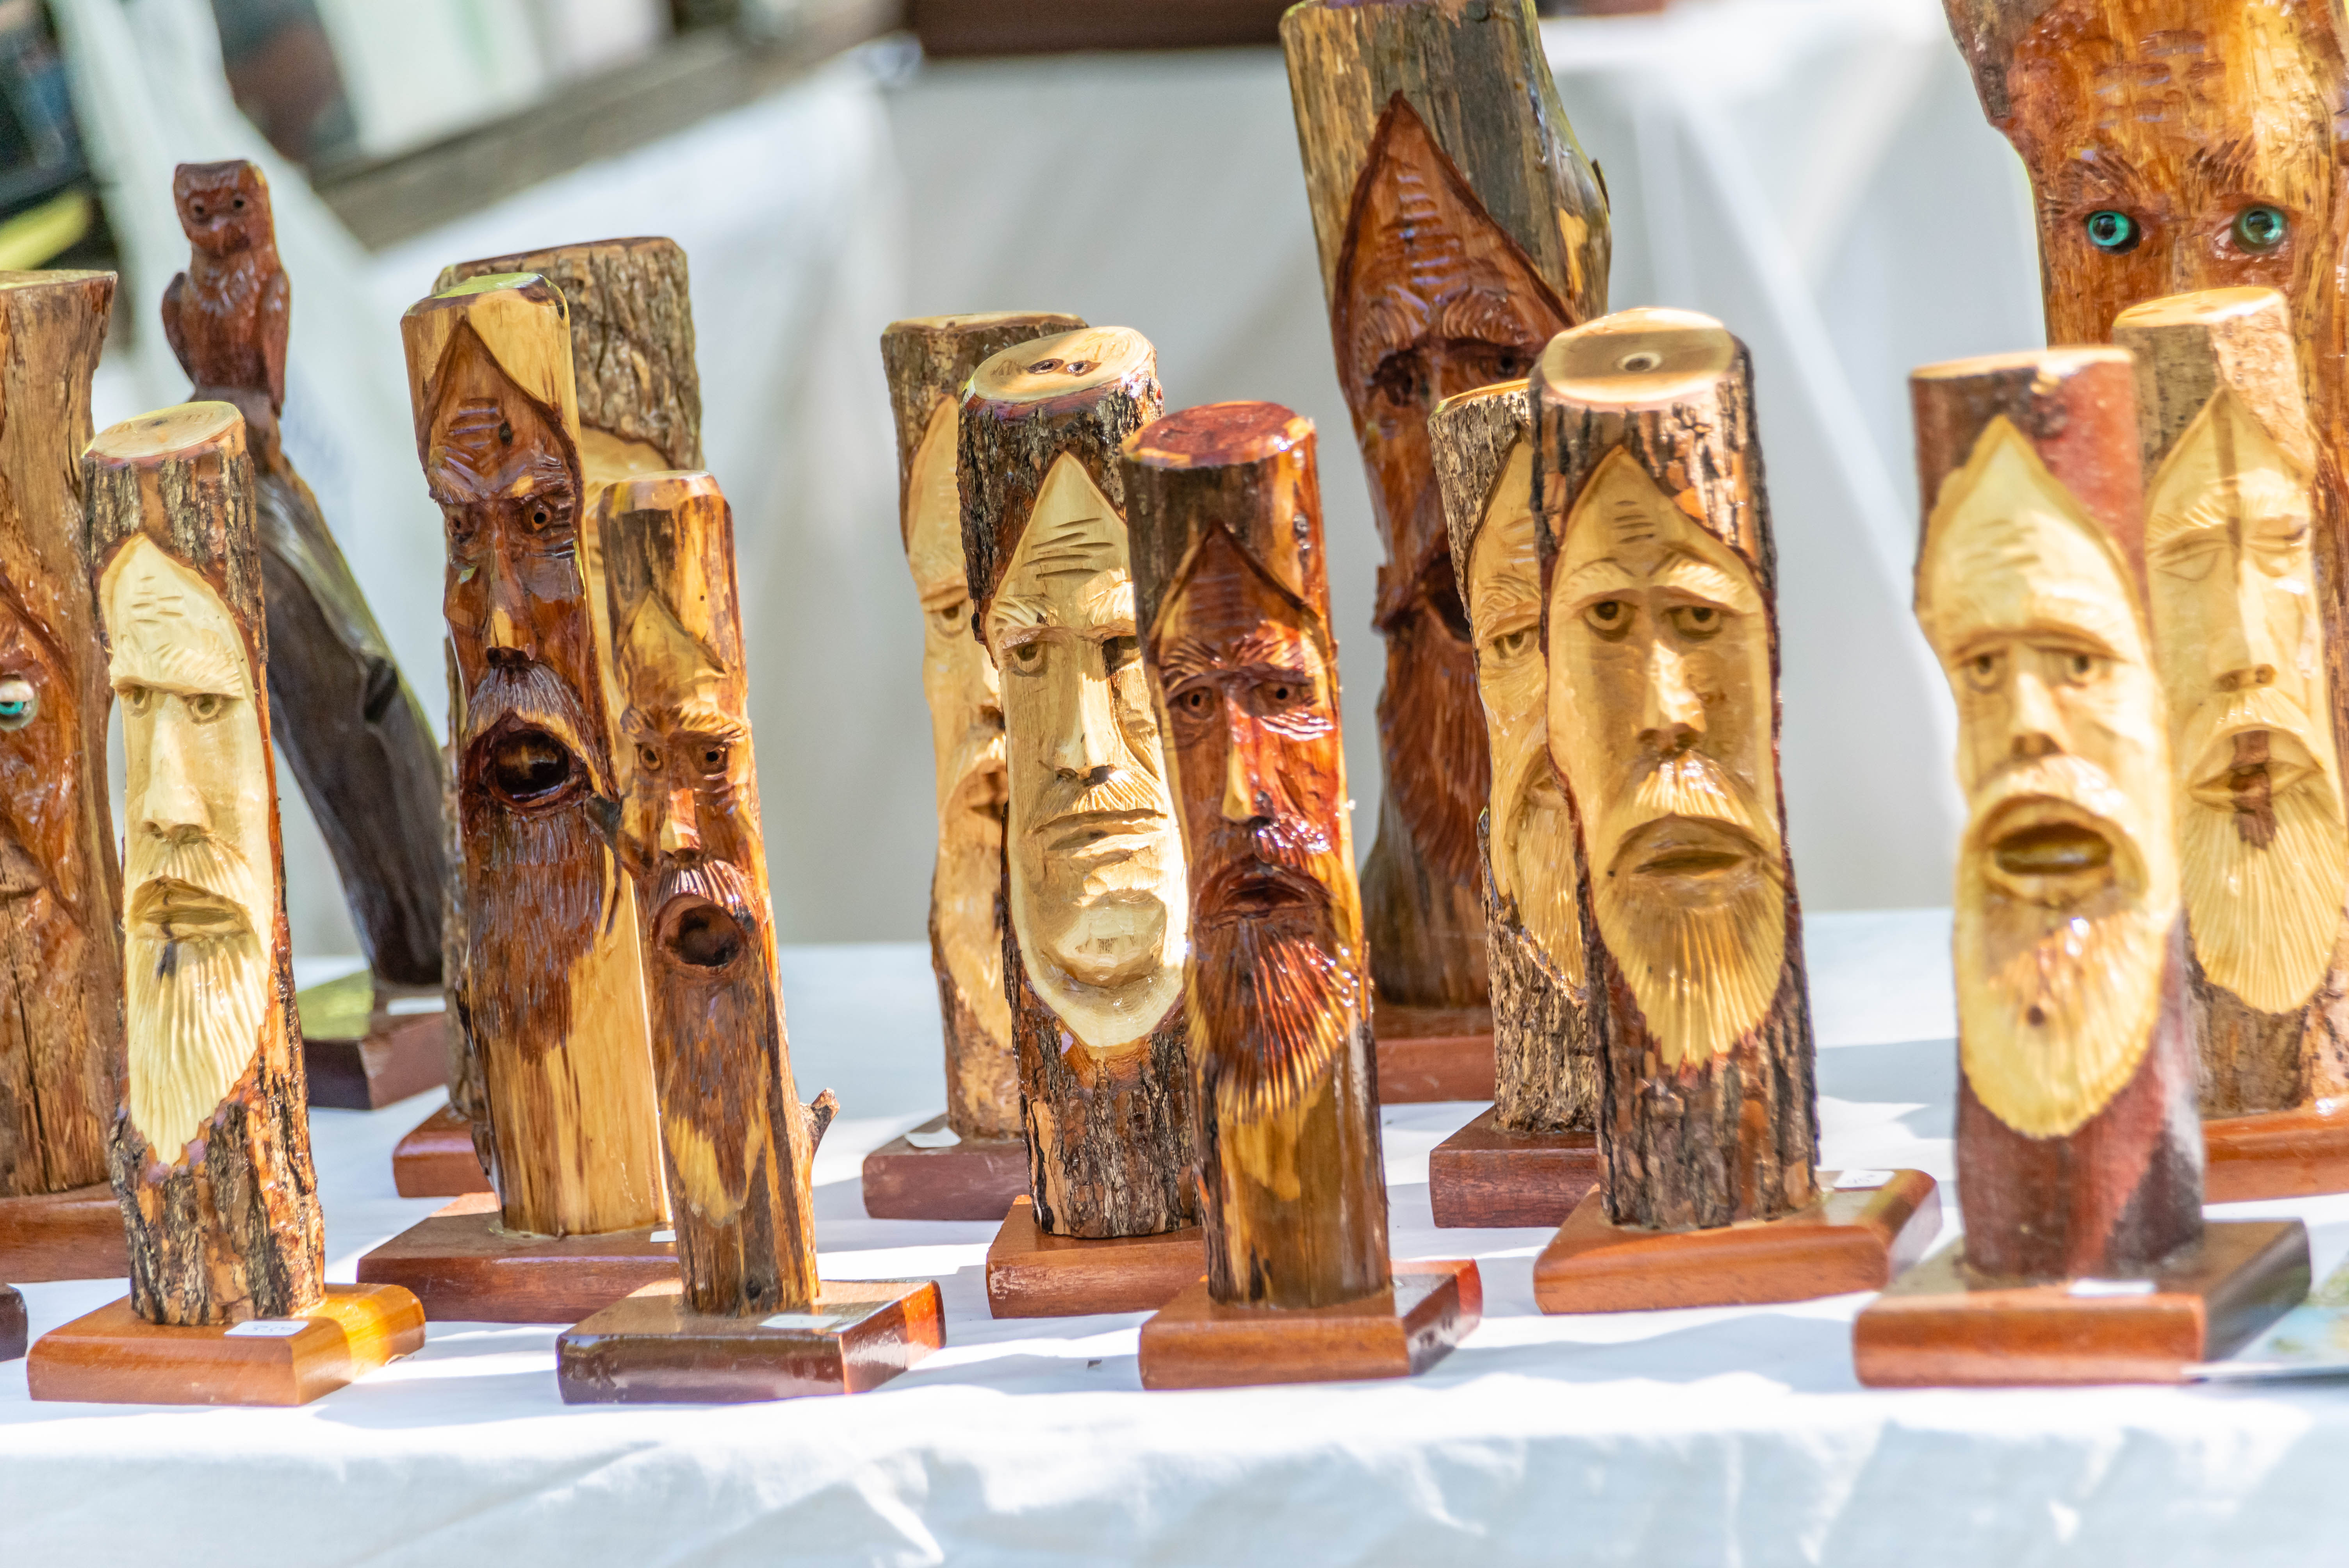 https://alabama-travel.s3.amazonaws.com/partners-uploads/photo/image/5b68b77bd2f36b2ae1000035/miniature_tinglewood_trees__carved_by_tim_tingle__will_be_offered_for_sale_at_the_festival.jpg